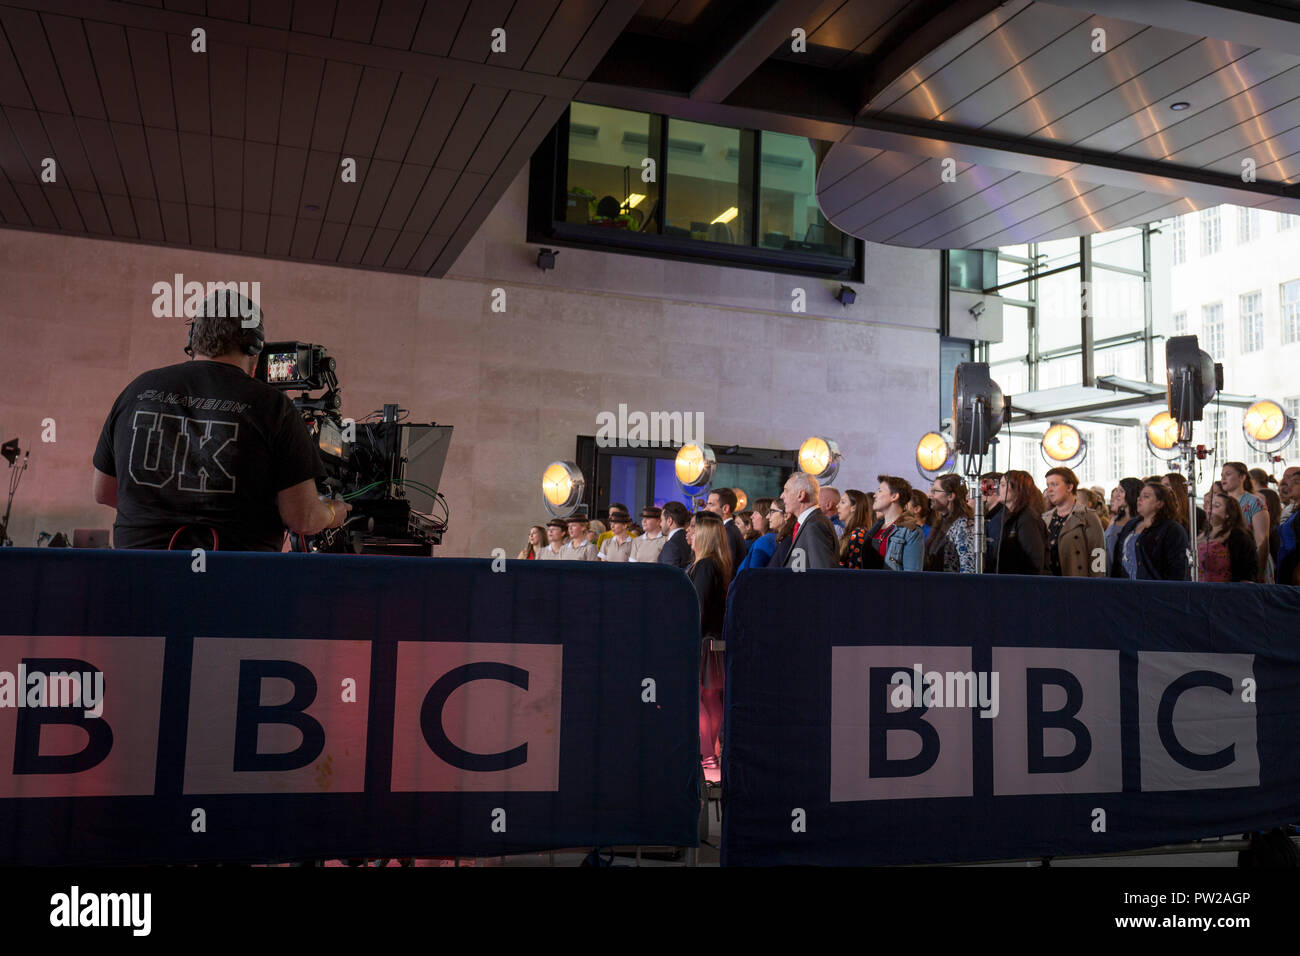 A BBC cameraman operates his equipment during a rehearsal for an outside broadcast for the One Show at Broadcasting House, on 4th October 2018, in London, England. - Stock Image